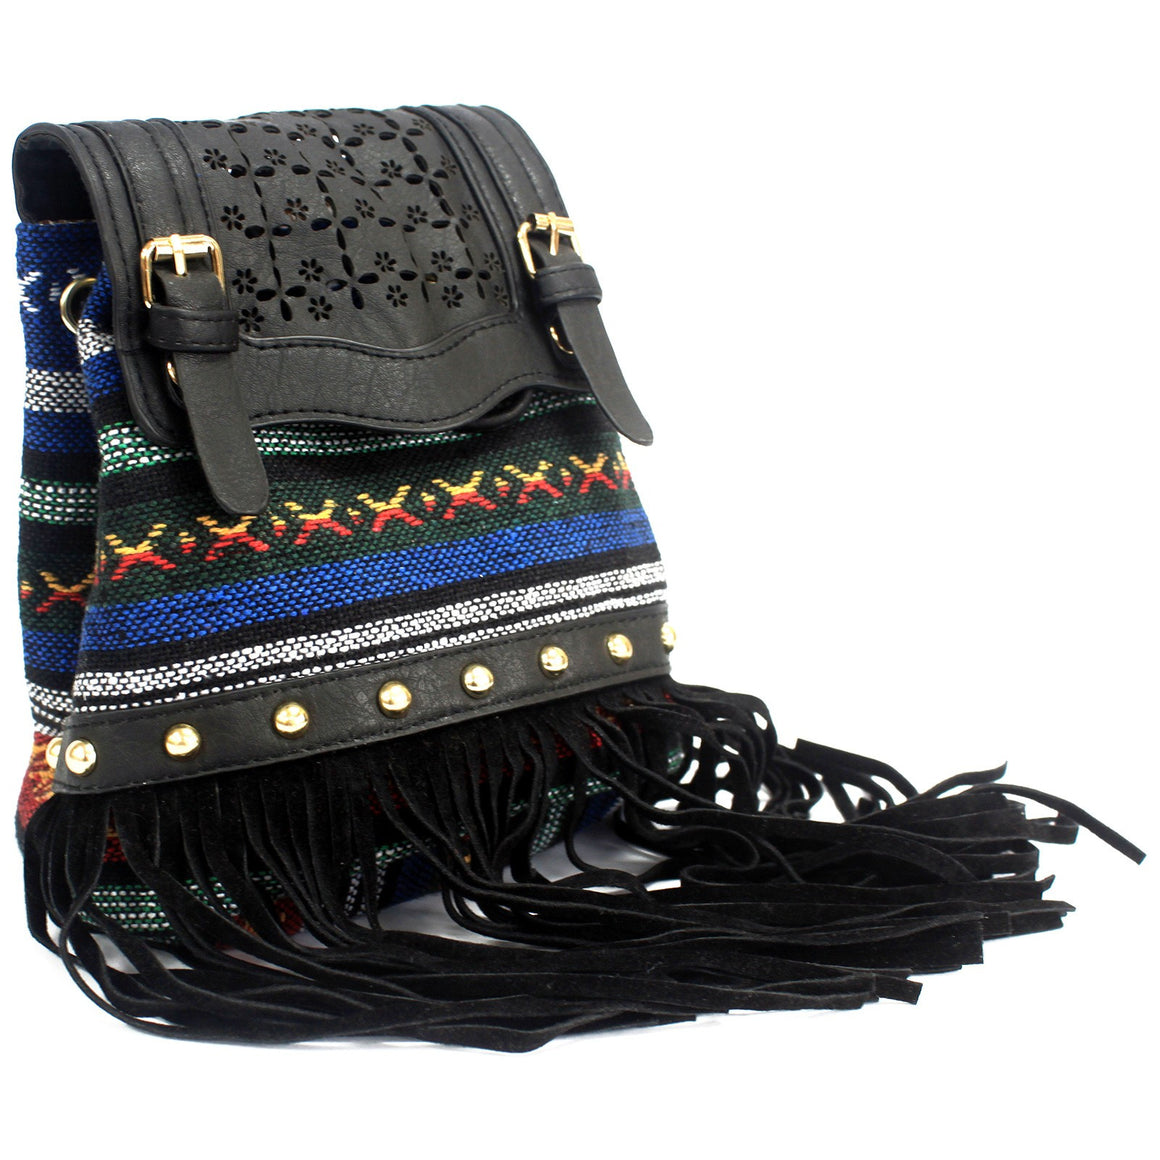 Bags, Black, Black Stripy With Fringe, Gift, Italian Style, Italian Style Handbags, Milan, Shoulder strap